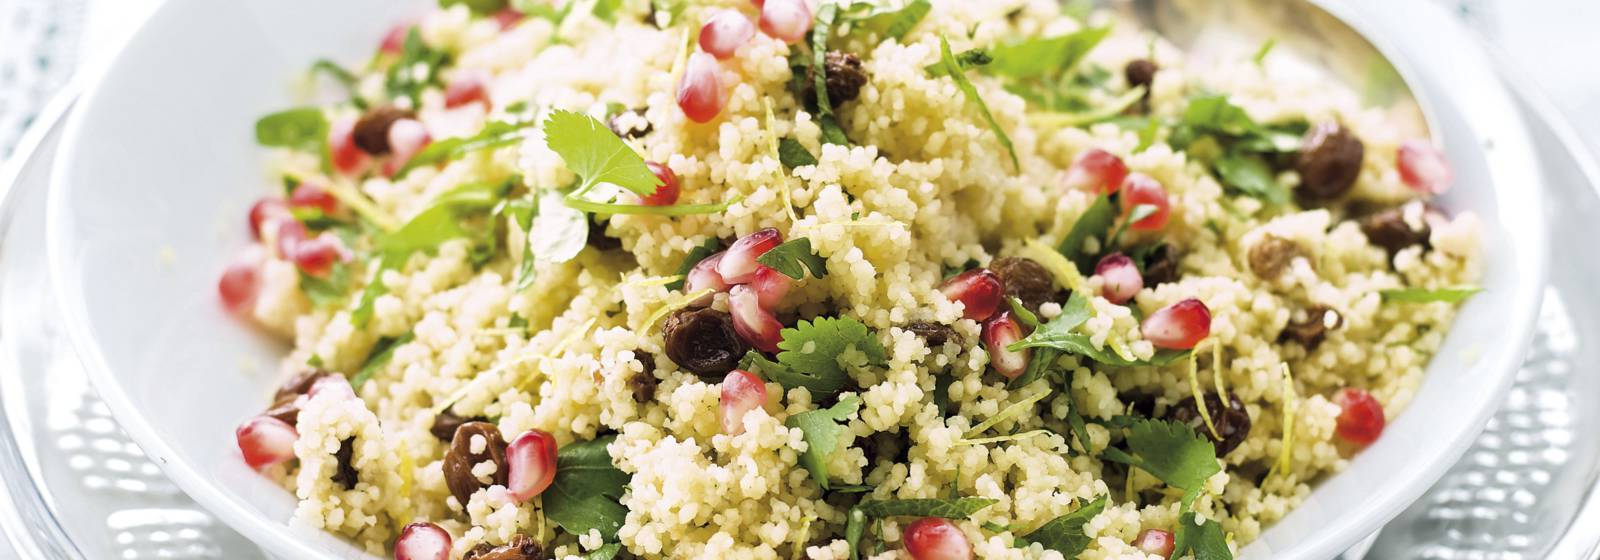 Herbal pomegranate couscous